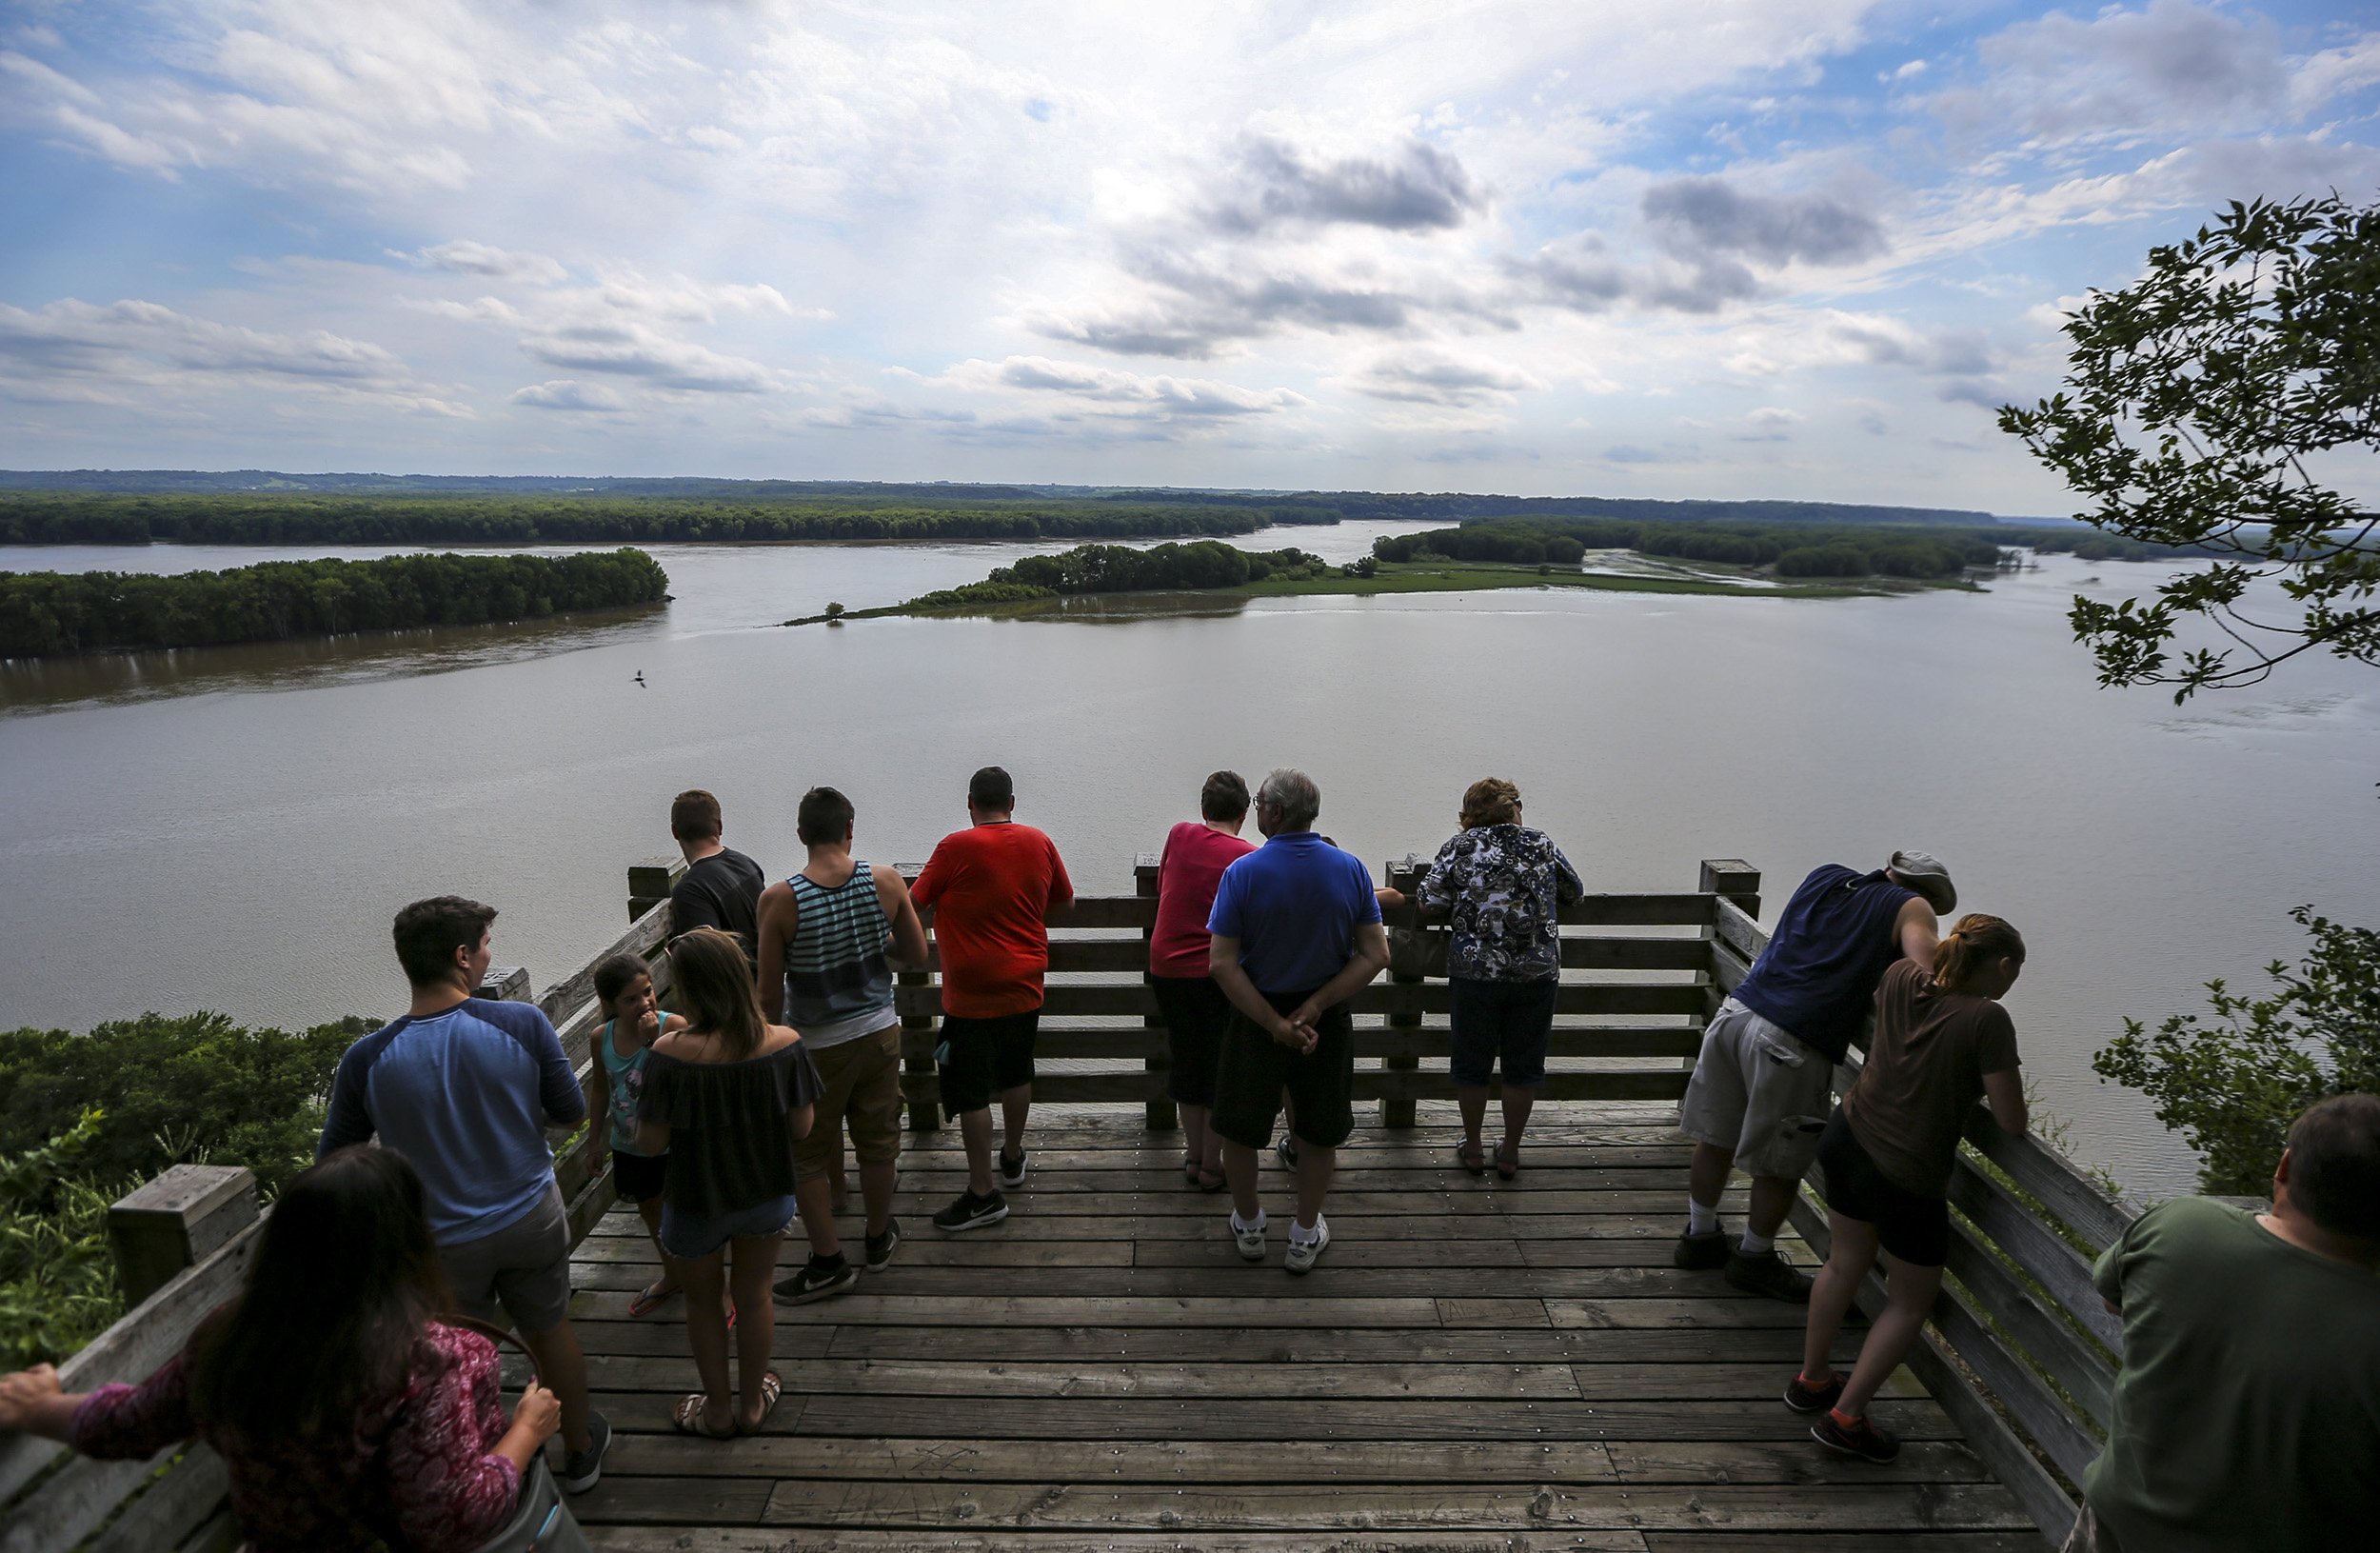 Park-goers take in the view from Lookout Point at Mississippi Palisades State Park in Savanna, Illinois, Saturday, July 15, 2017.